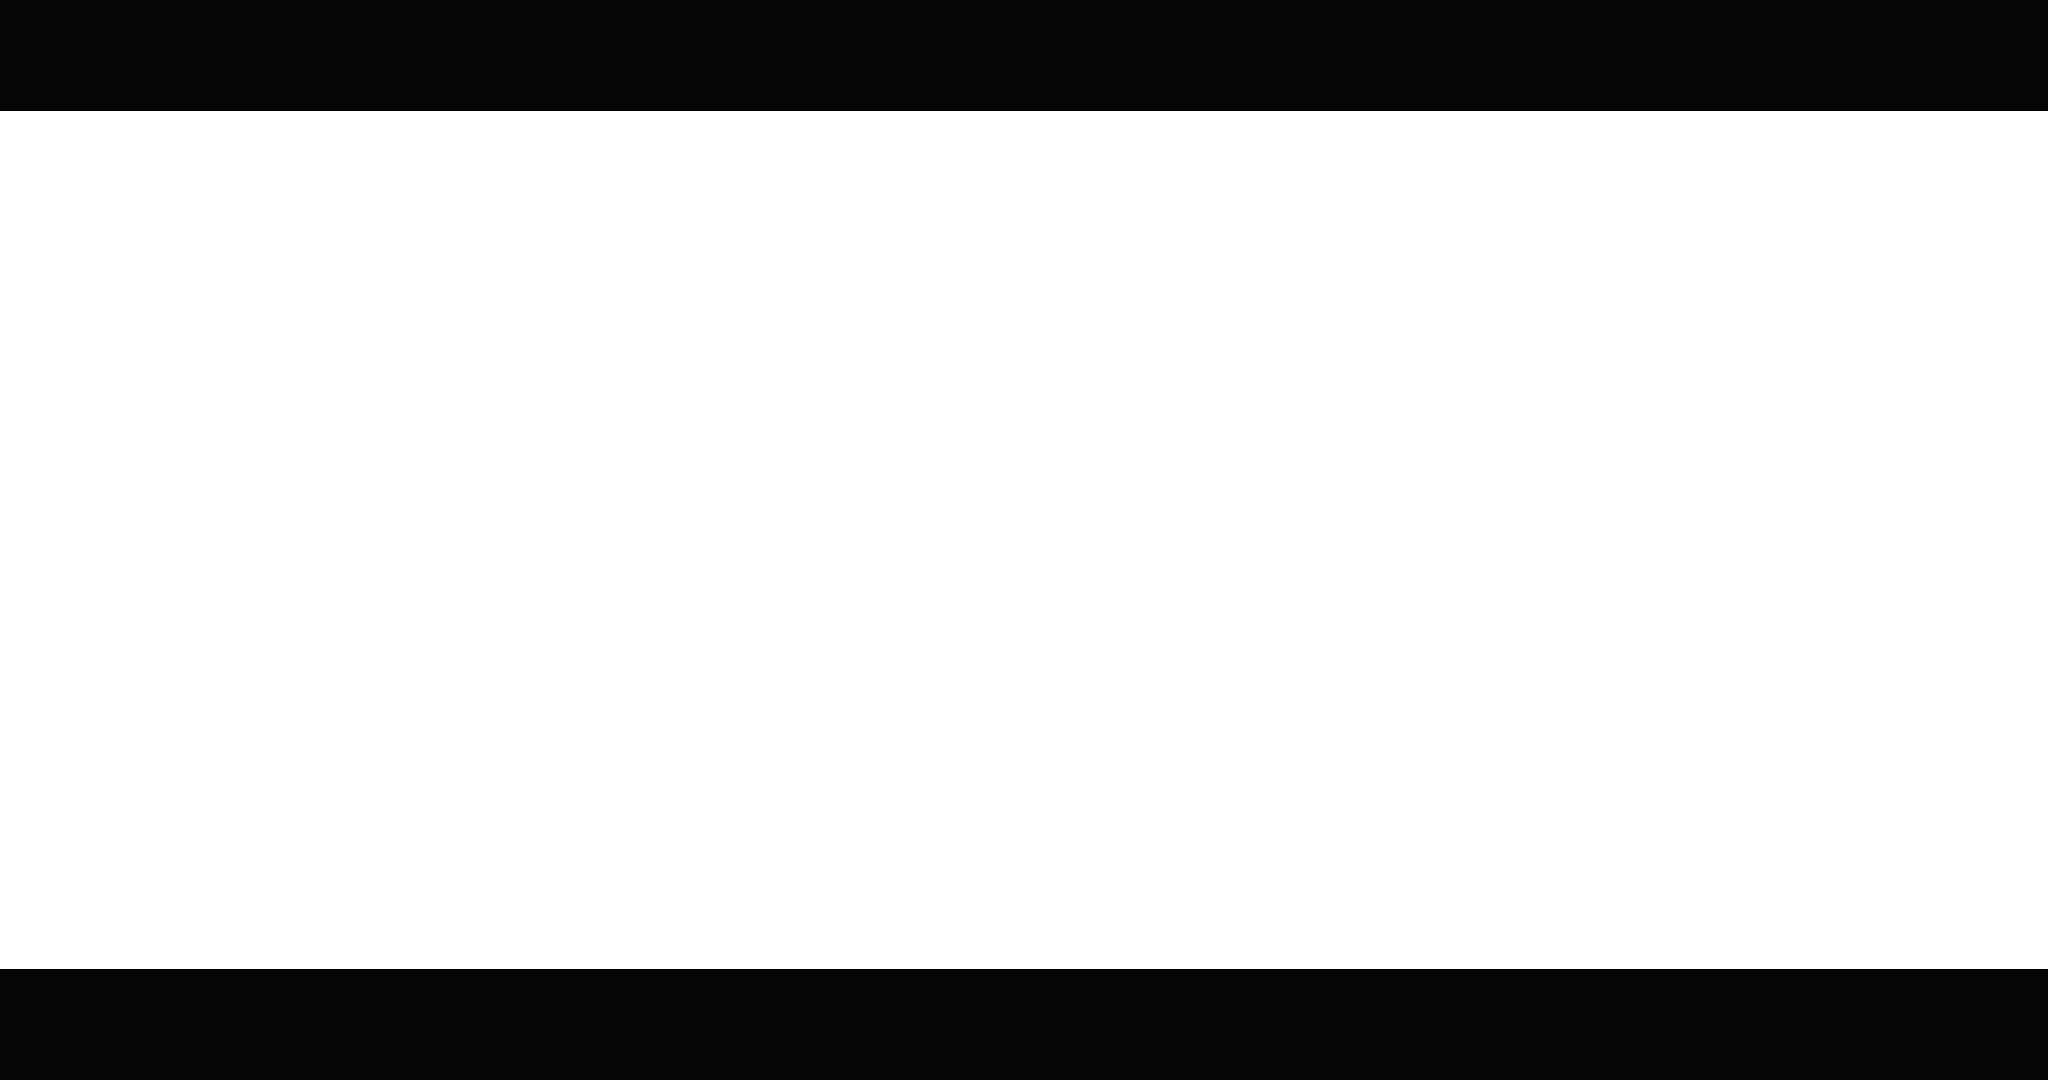 Movie black bars png. Research having looked at